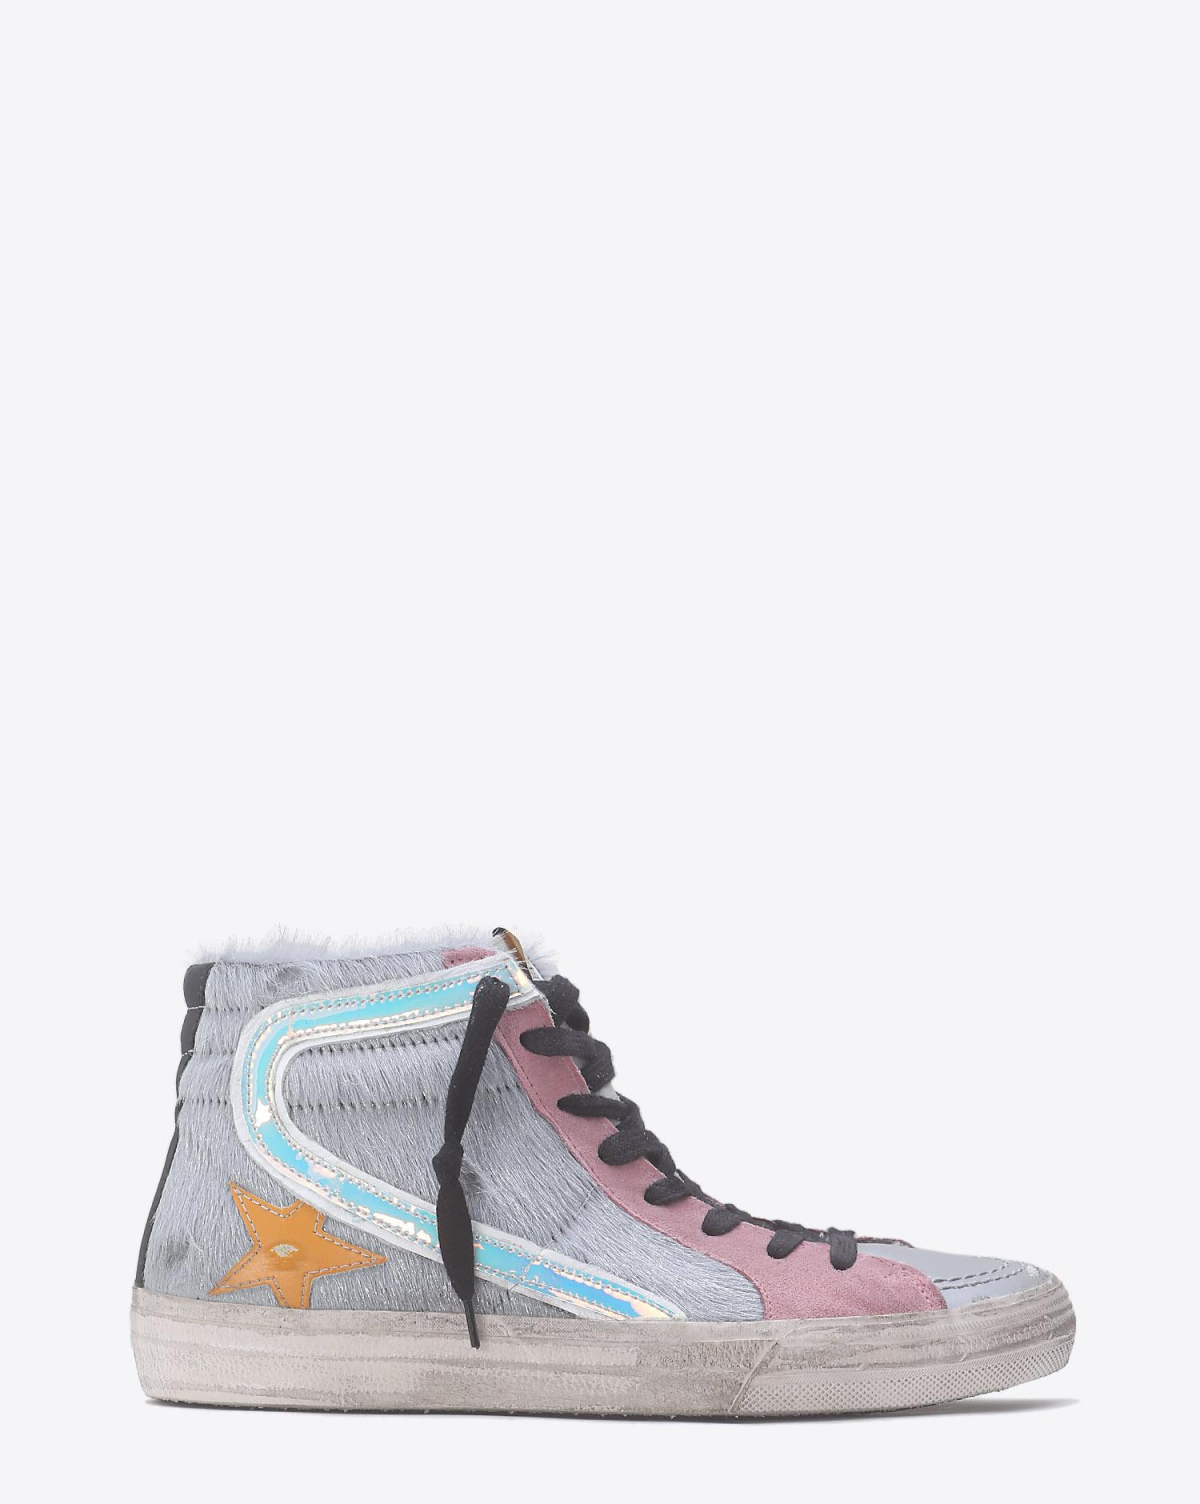 Golden Goose Woman Pré-Collection Sneakers Slide Silver Pony-Ocher Star